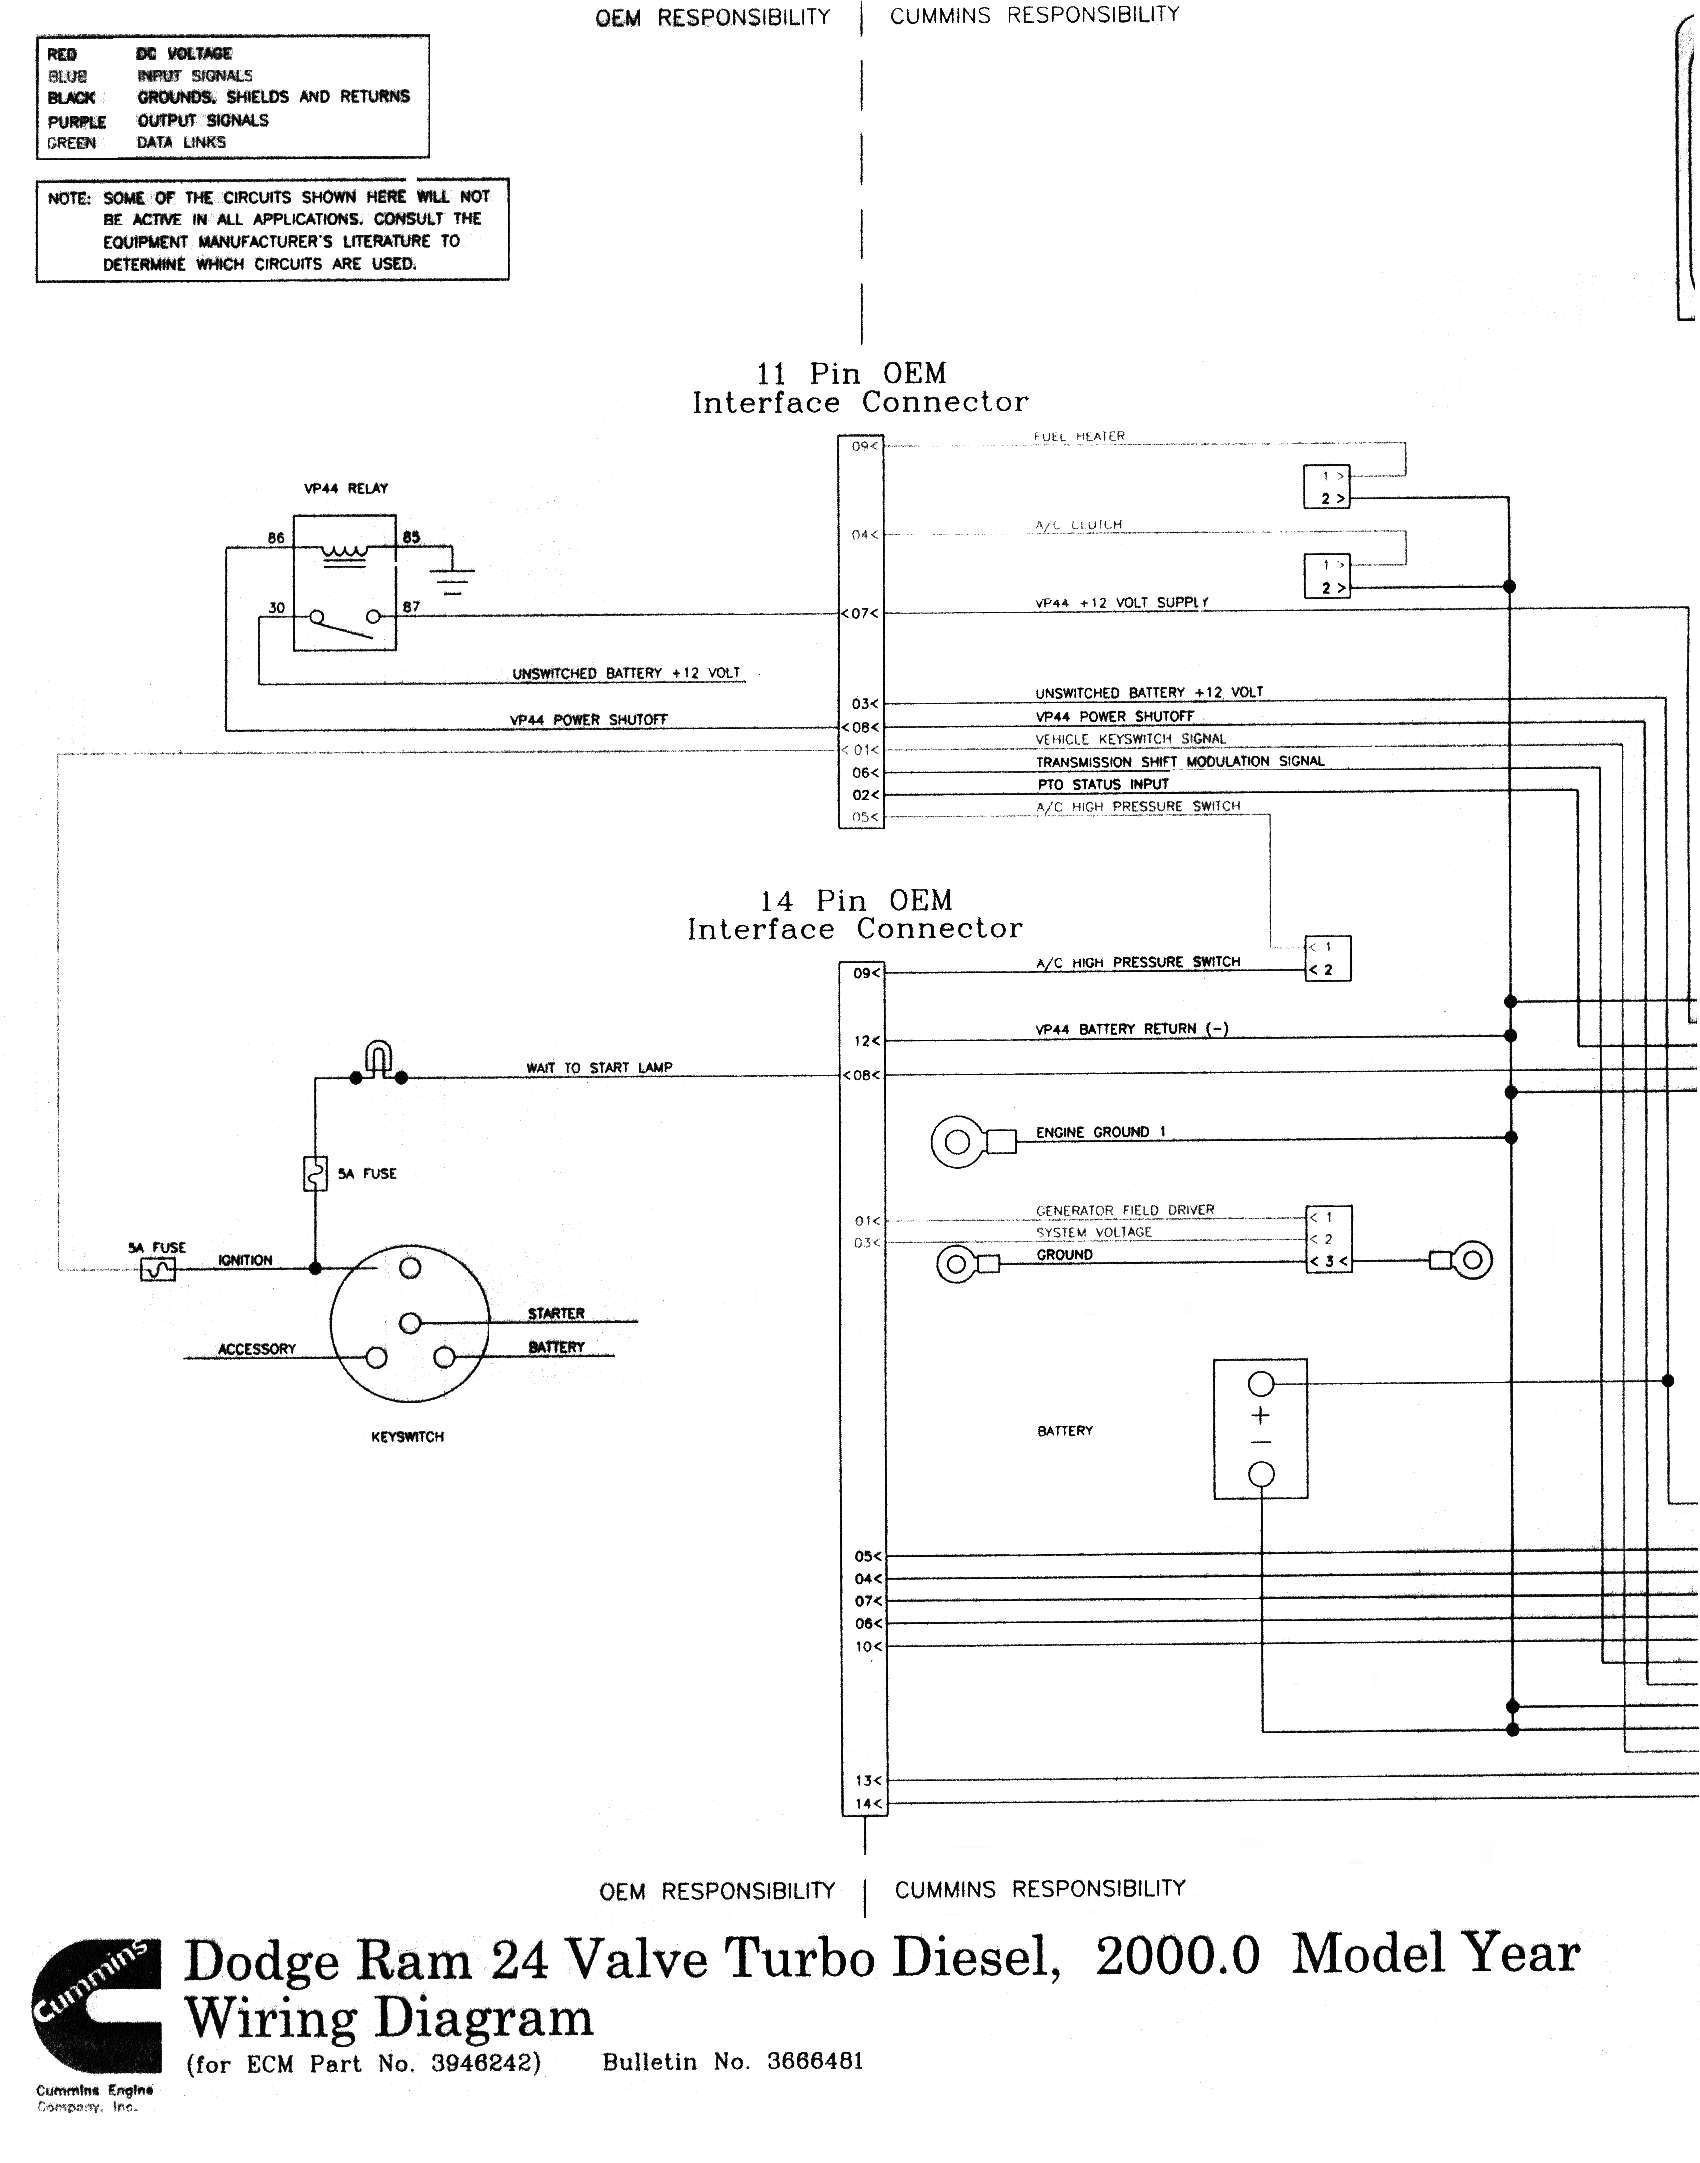 1997 dodge ram wiring diagram dodge ram wiring diagram 2005 2005 dodge ram 2500 diesel wiring diagram | free wiring ...